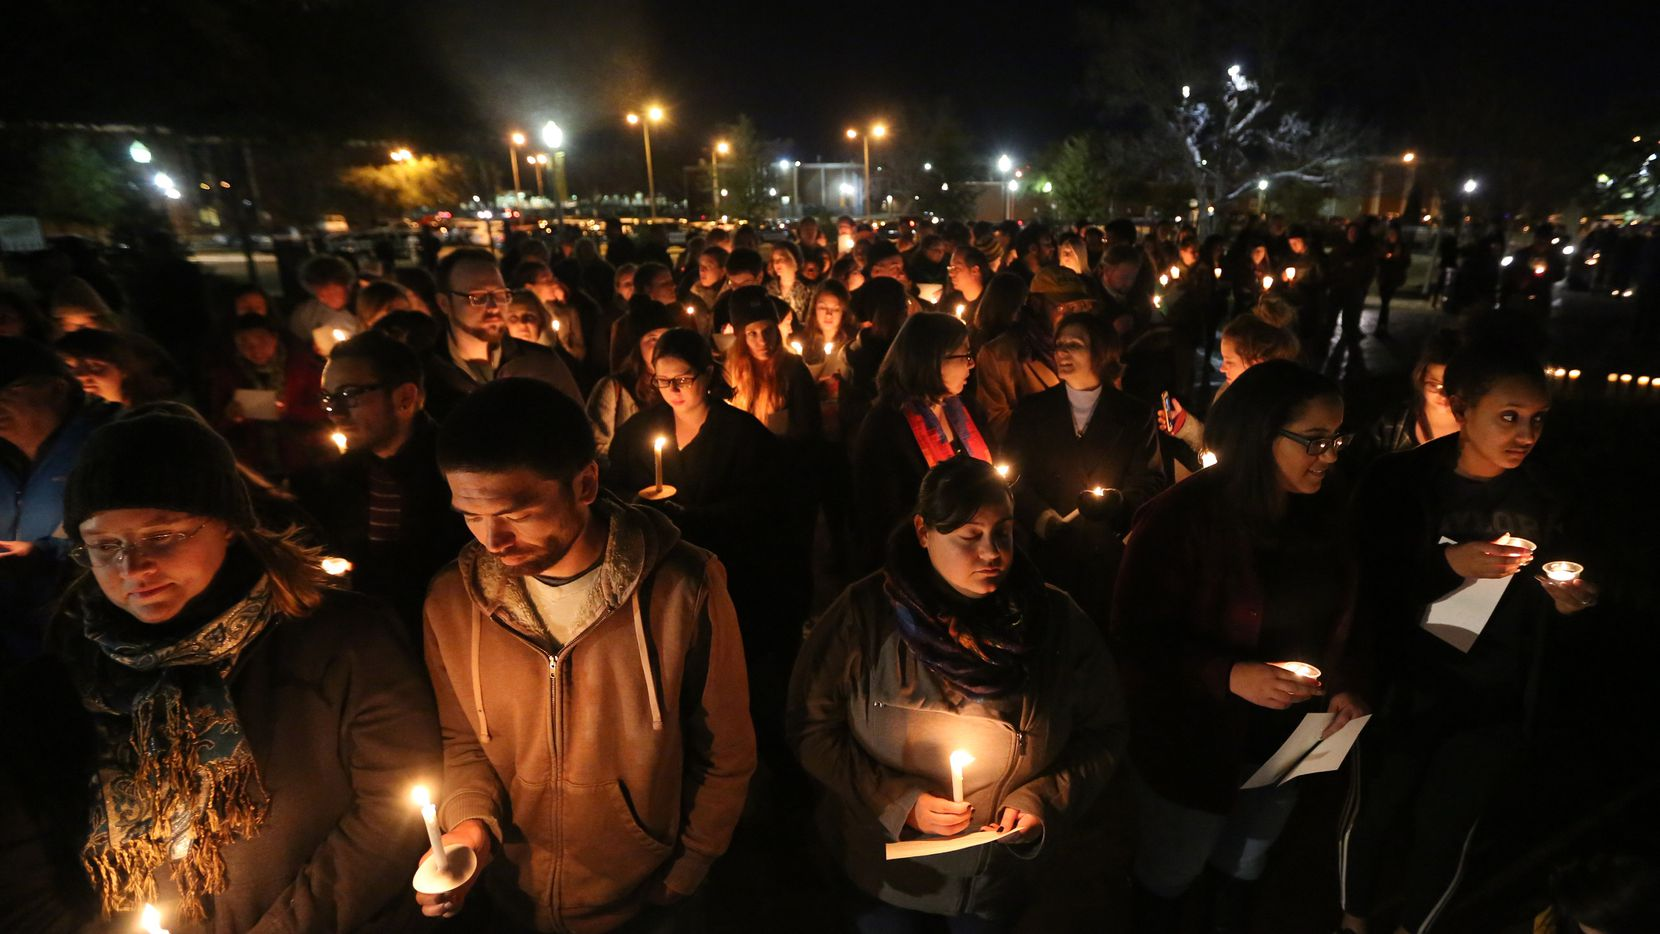 In the months after the 2015 story broke about sexual assault allegations within Baylor's football program, students and alumni at the Waco school held candlelight vigils in support of the survivors.